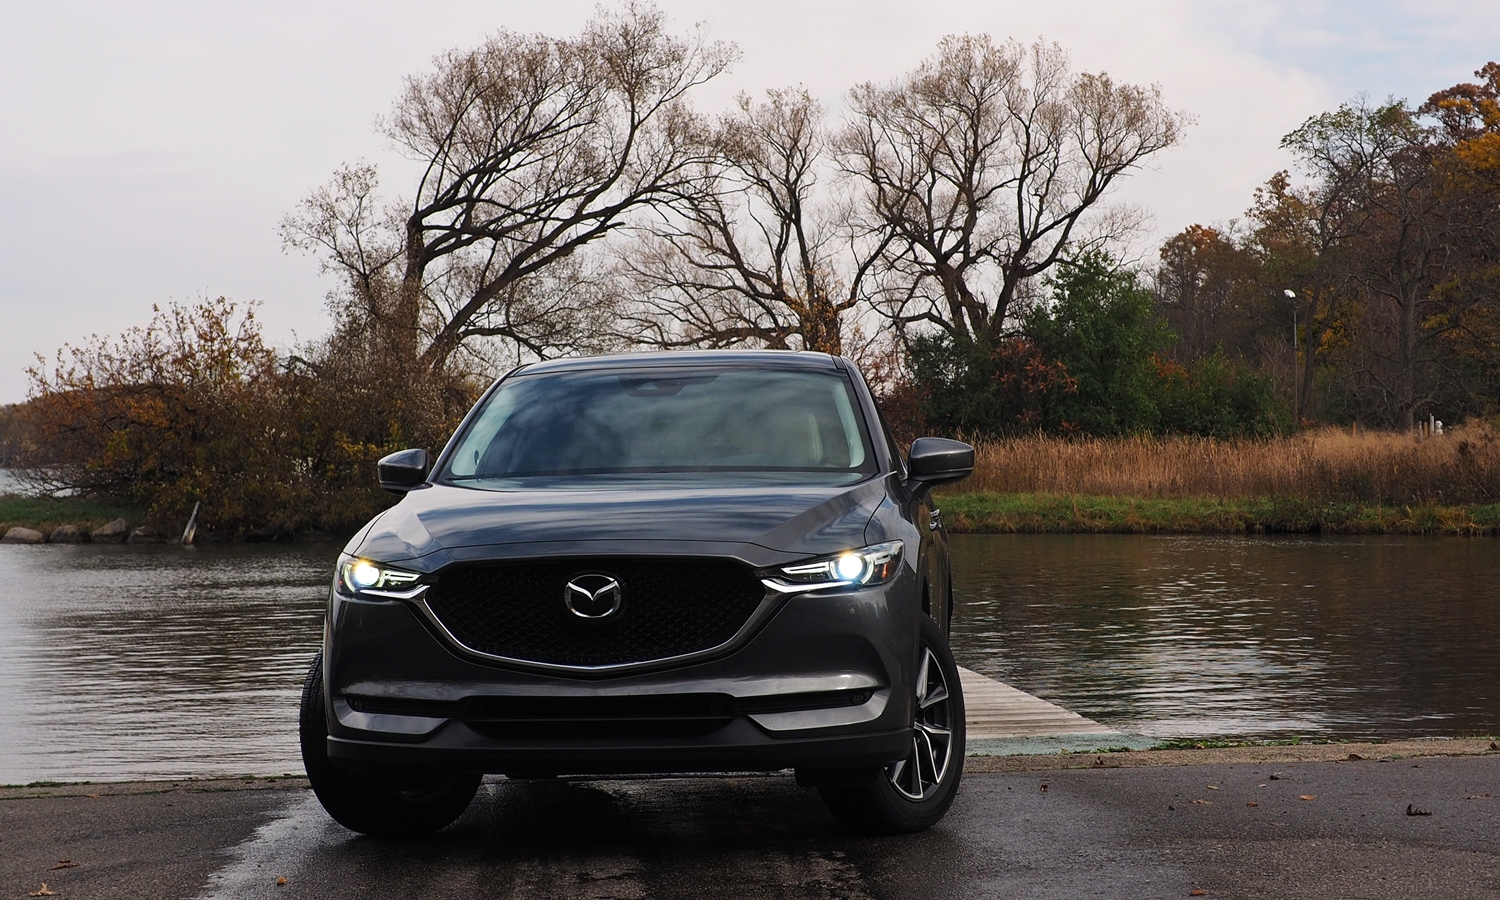 CX-5 Reviews: 2017 Mazda CX-5 front view